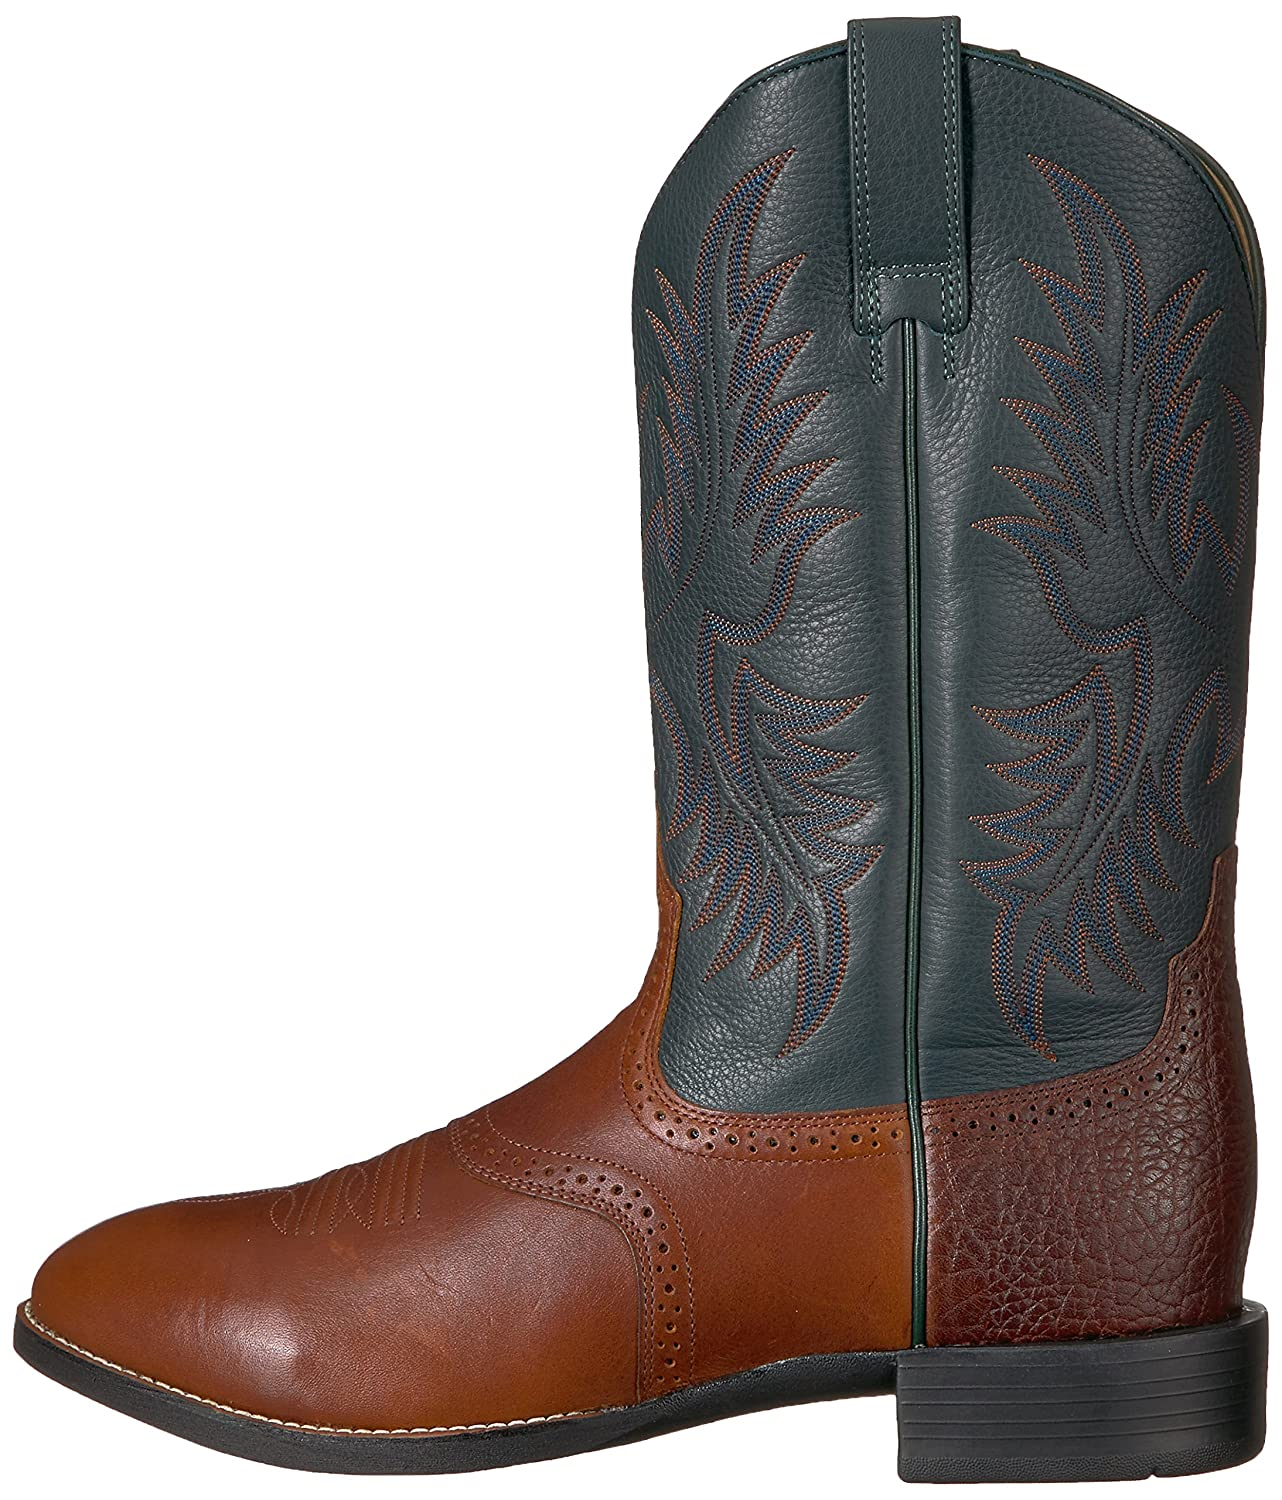 Ariat Men's Heritage Stockman Western Boot B000JWB7QU 9 D(M) US|Cedar/Green